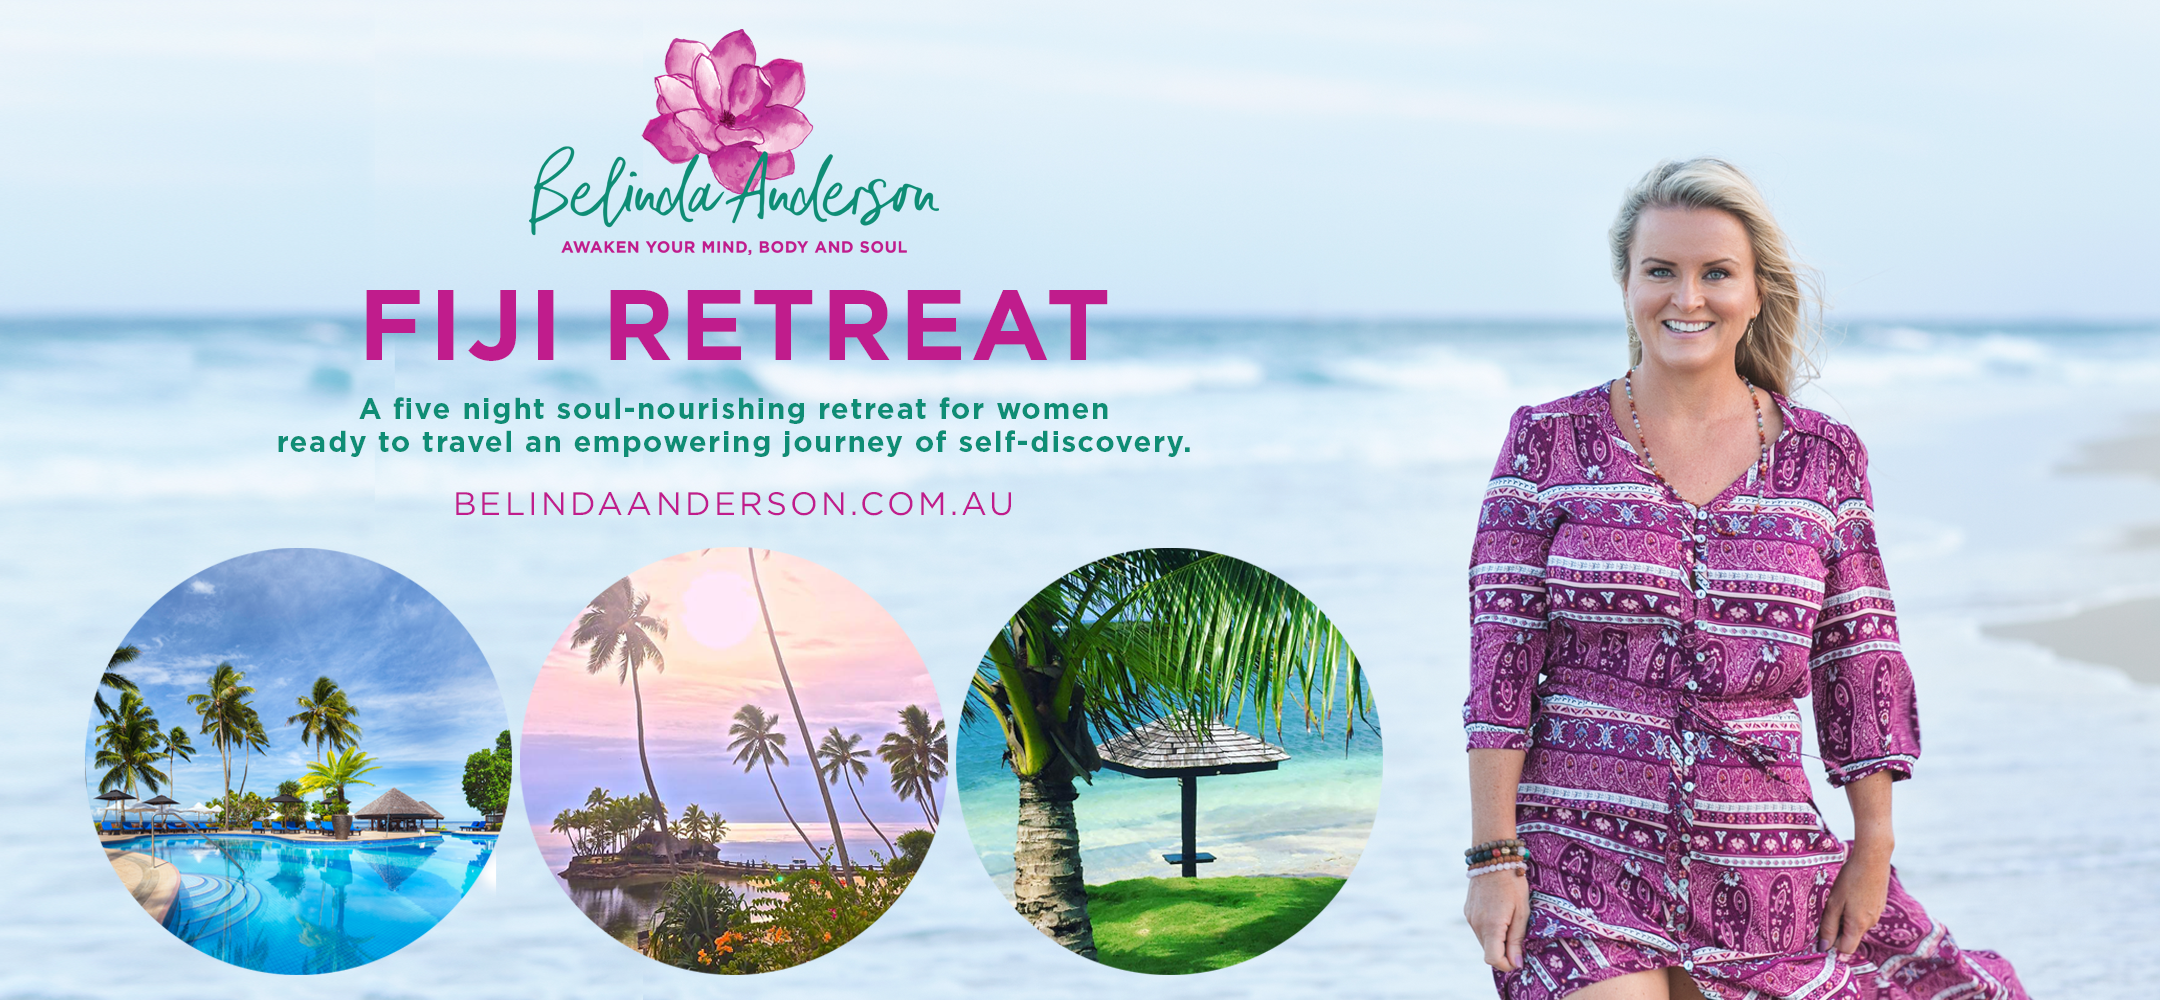 Women's Retreat in Fiji